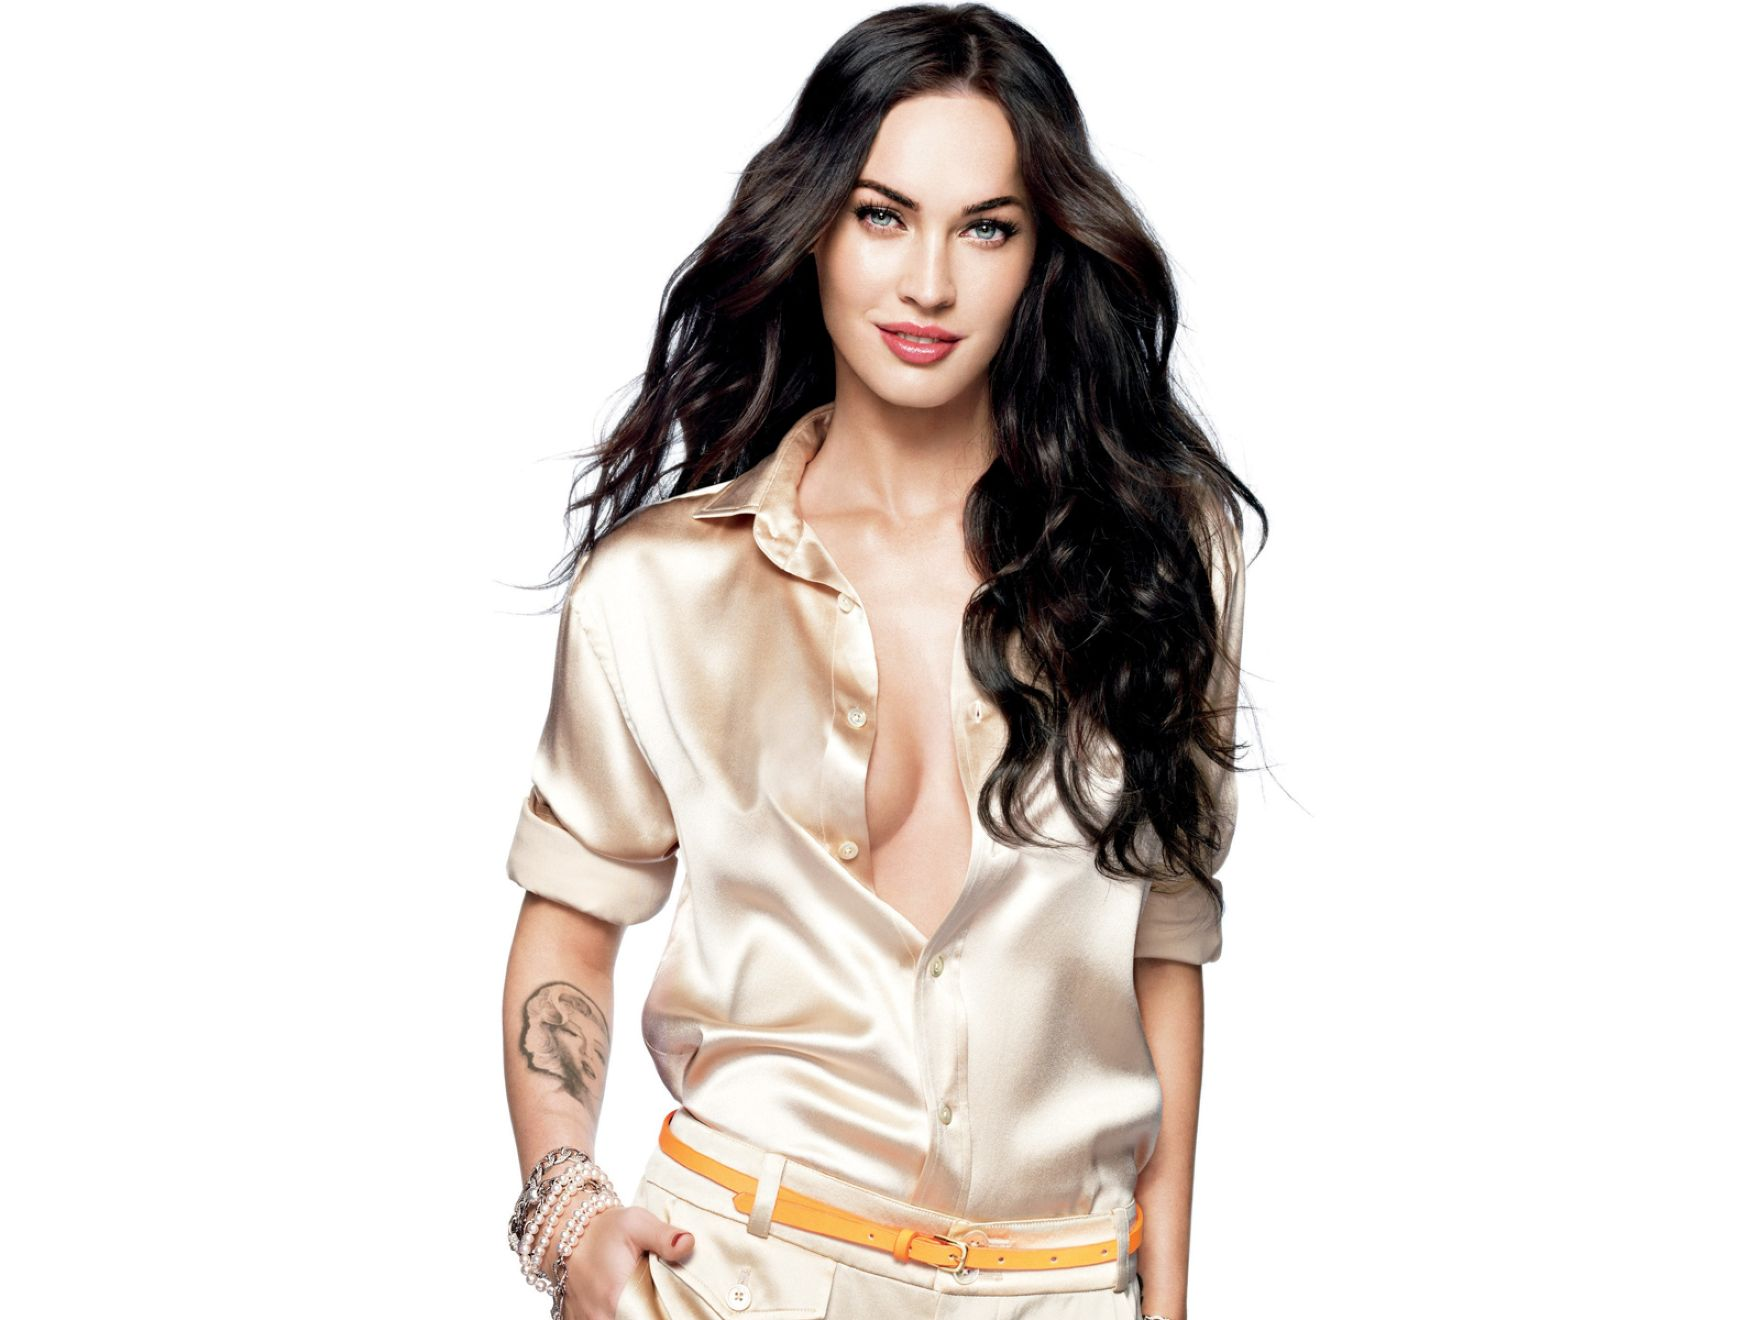 Download free HD 2011 Megan Fox Normal Wallpaper, image